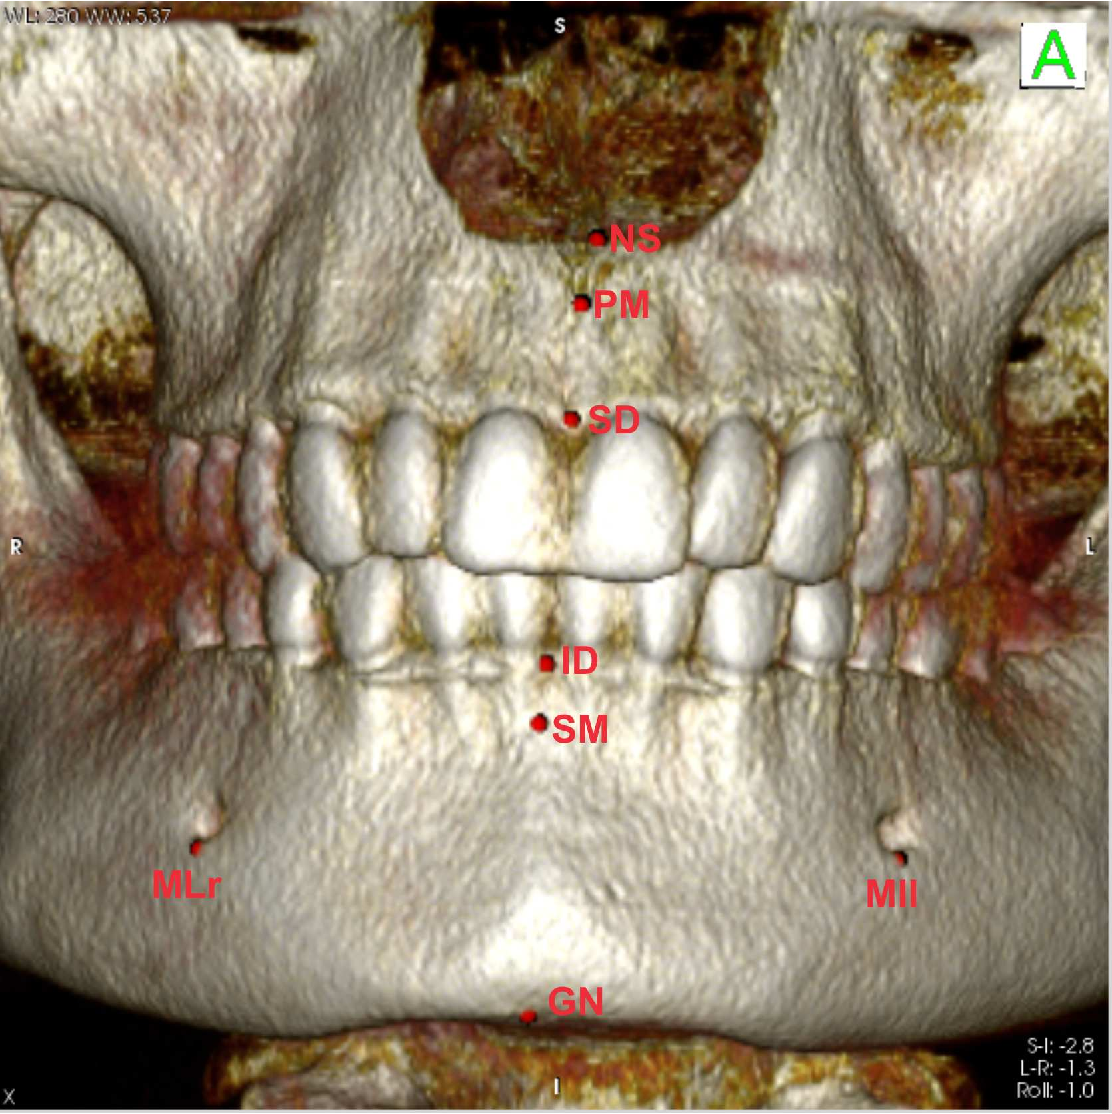 Practical Application of Anatomy of the Oral Cavity in Forensic ...